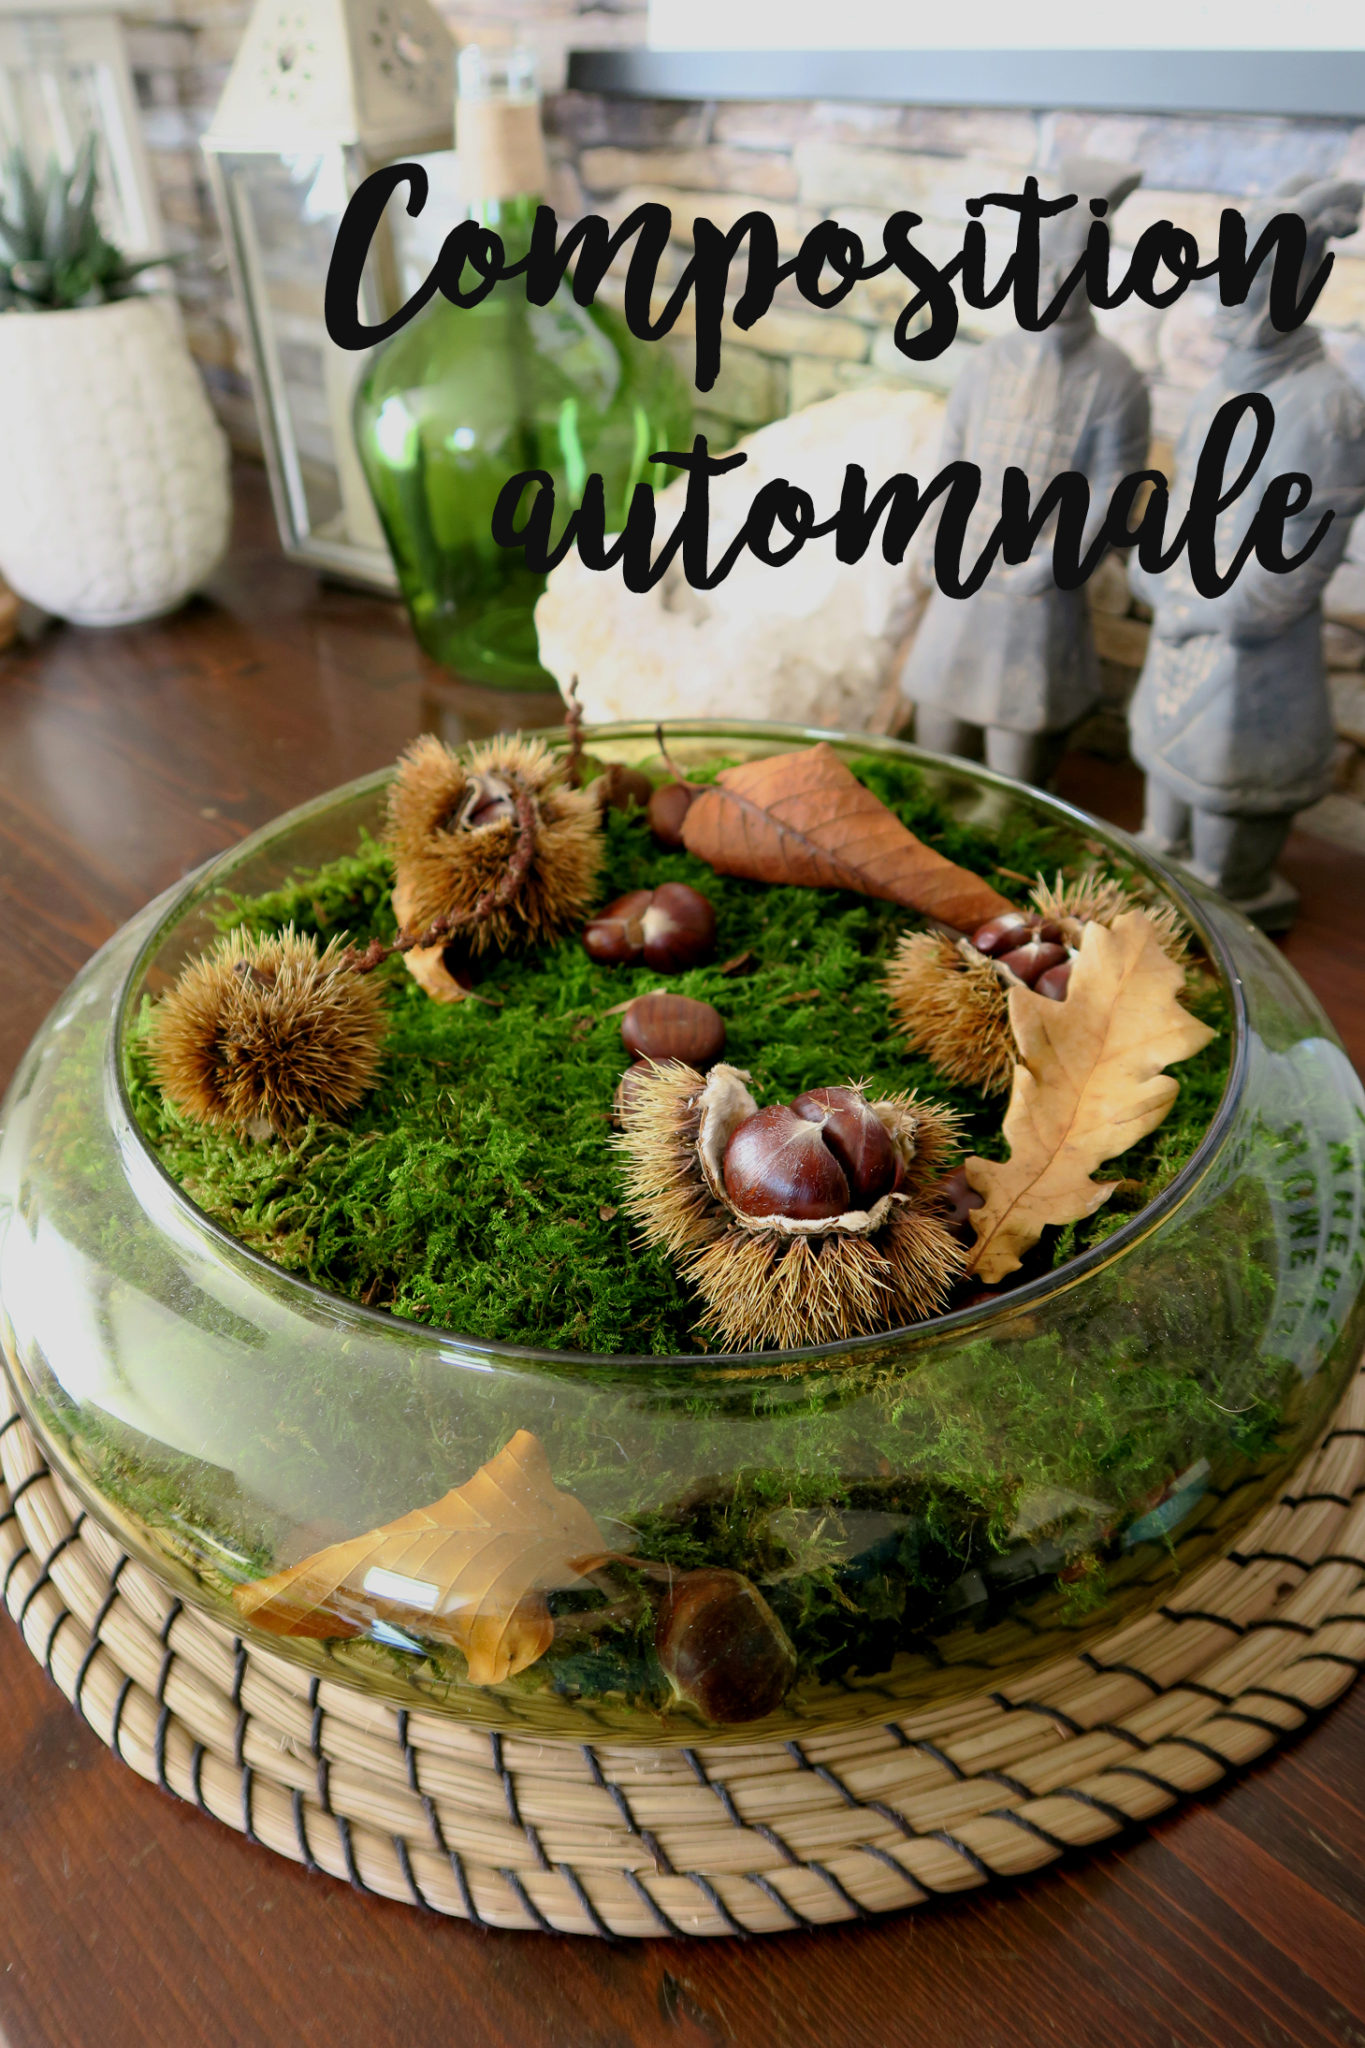 DIY : Composition automnale